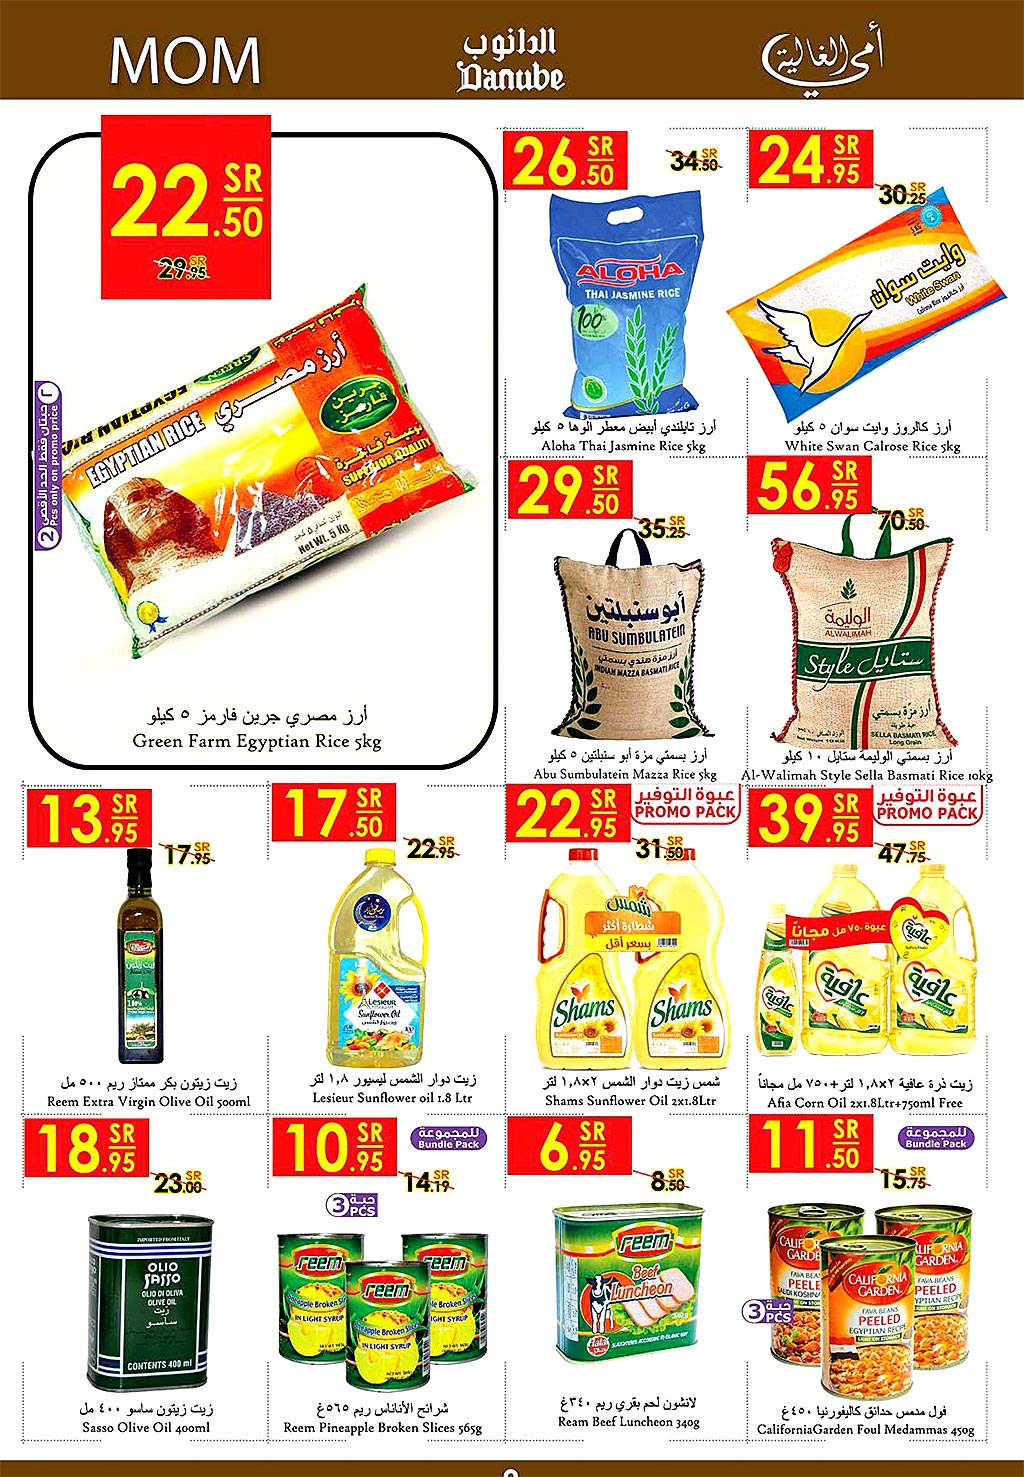 danube offers from 13mar to 20mar 2019 page number 8 عروض الدانوب من 13 مارس حتى 20 مارس 2019 صفحة رقم 8